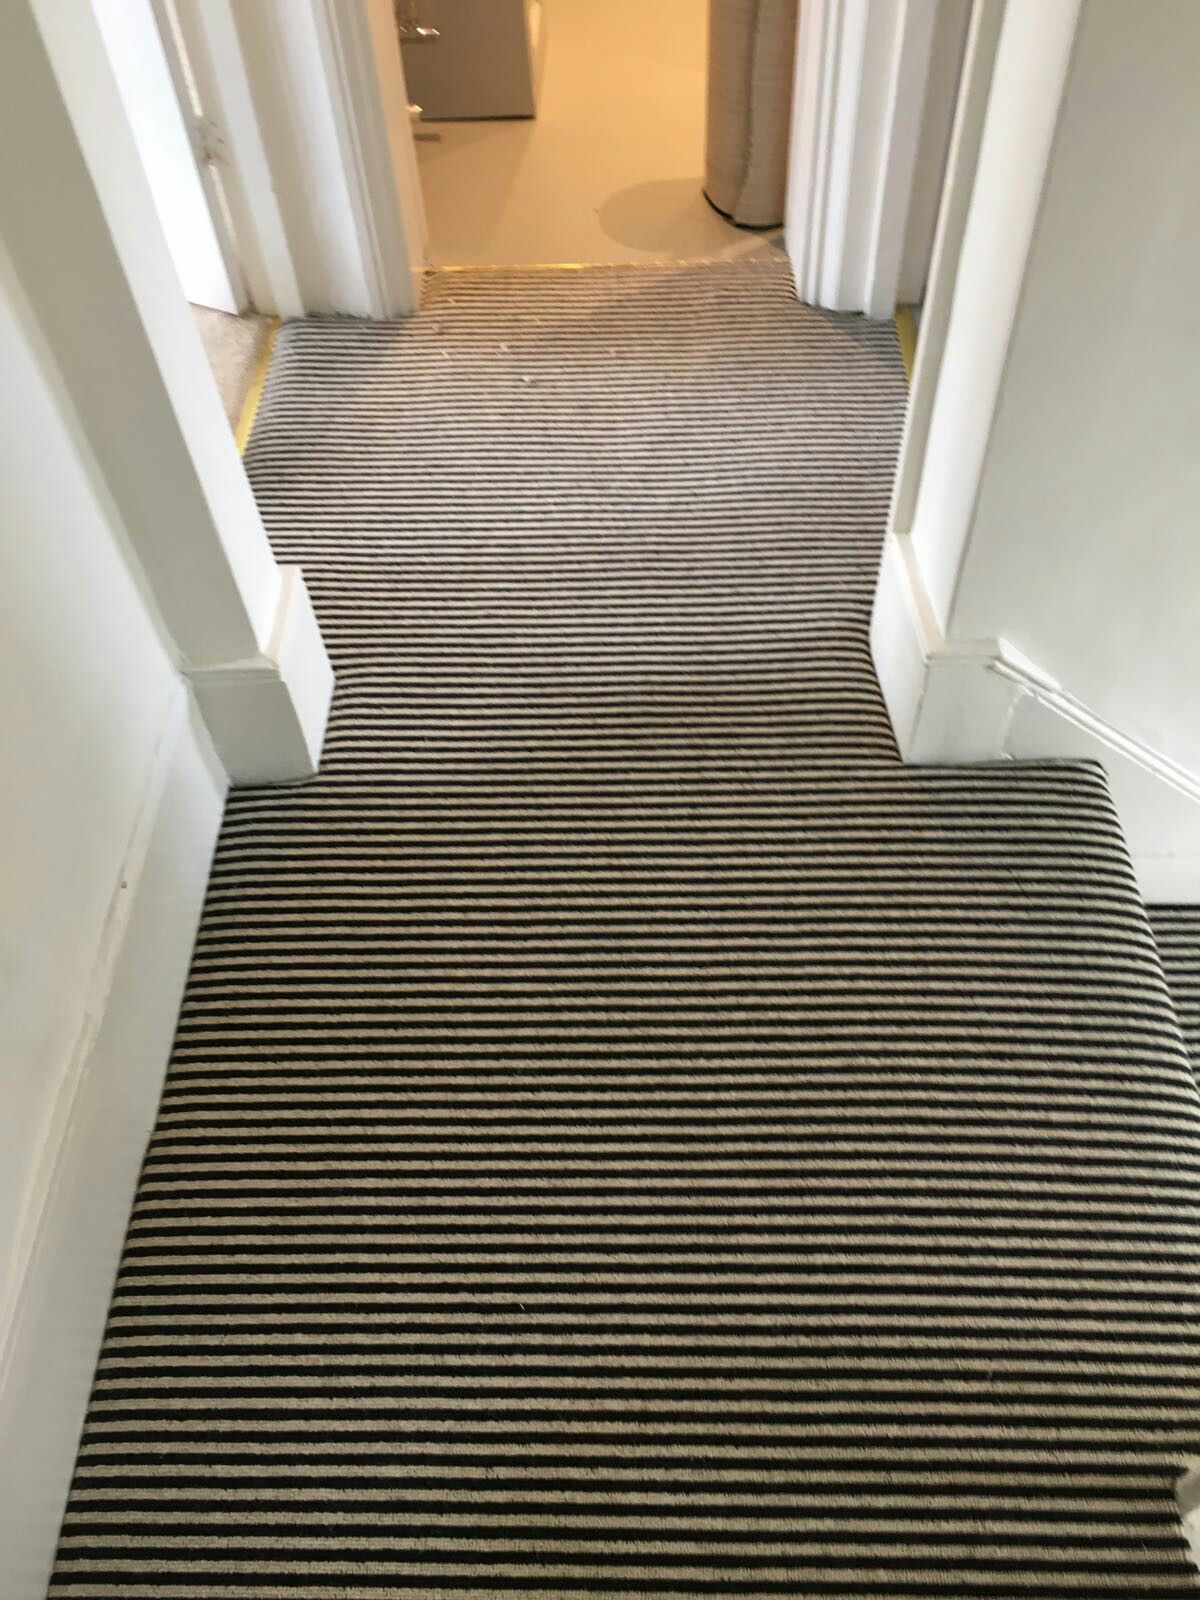 Best Black And White Striped Carpets Fitted Onto Hall Stairs 400 x 300